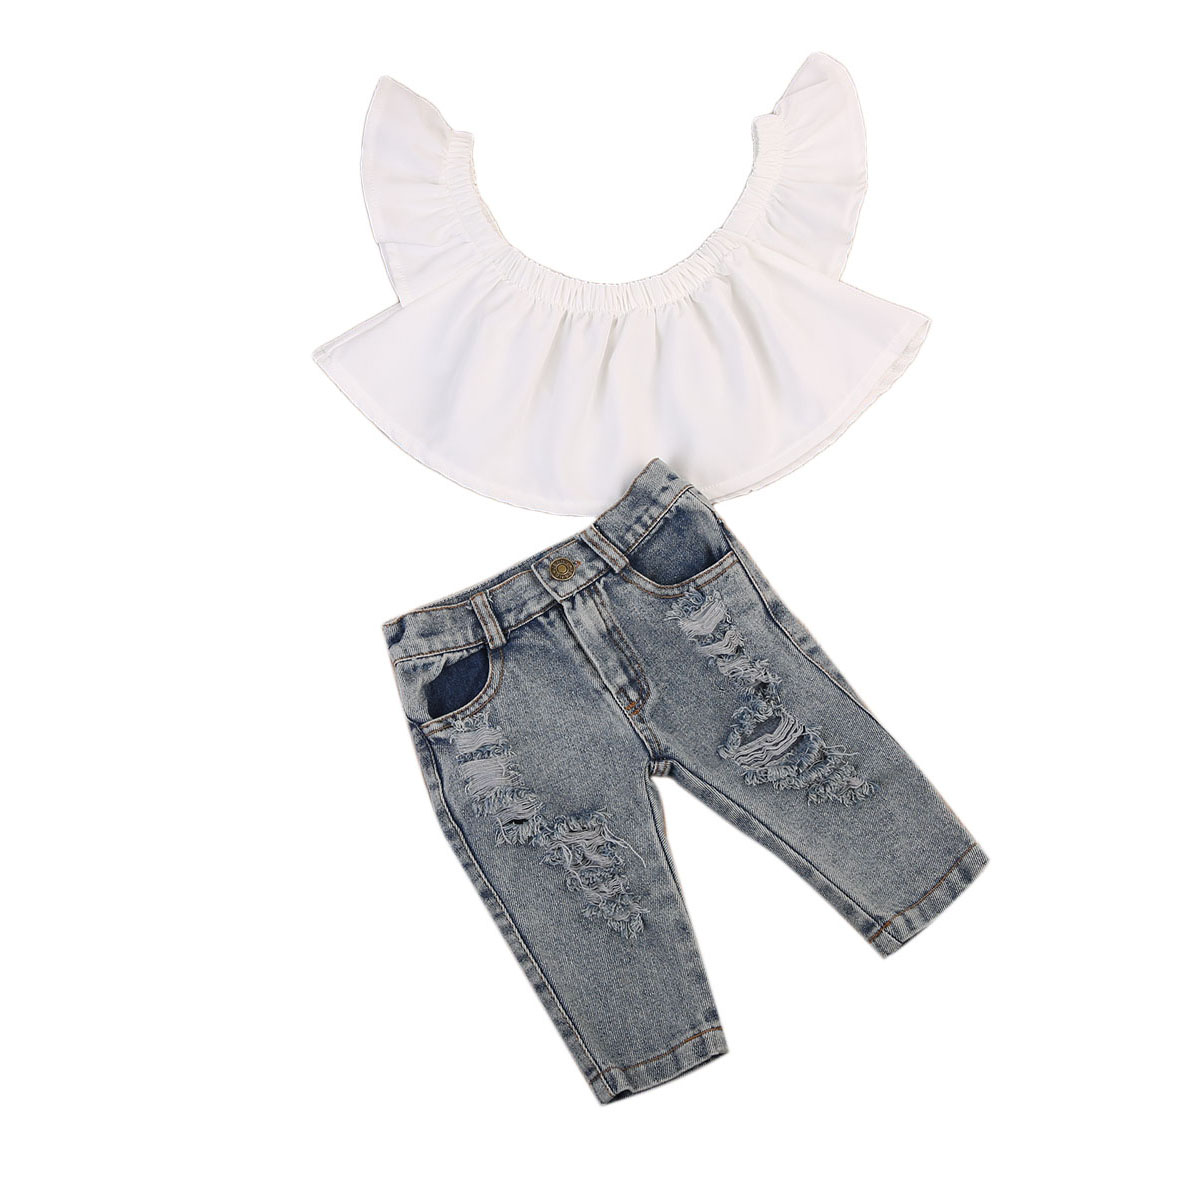 Babies Street Style Clothing Set Infant Kids Baby Girls Off Shoulder Tops Blouse+Ripped Holes Denim Jeans Pants Outfits off shoulder tops t shirts denim pants hole jeans 3pcs outfits set clothing fashion baby kids girls clothes sets